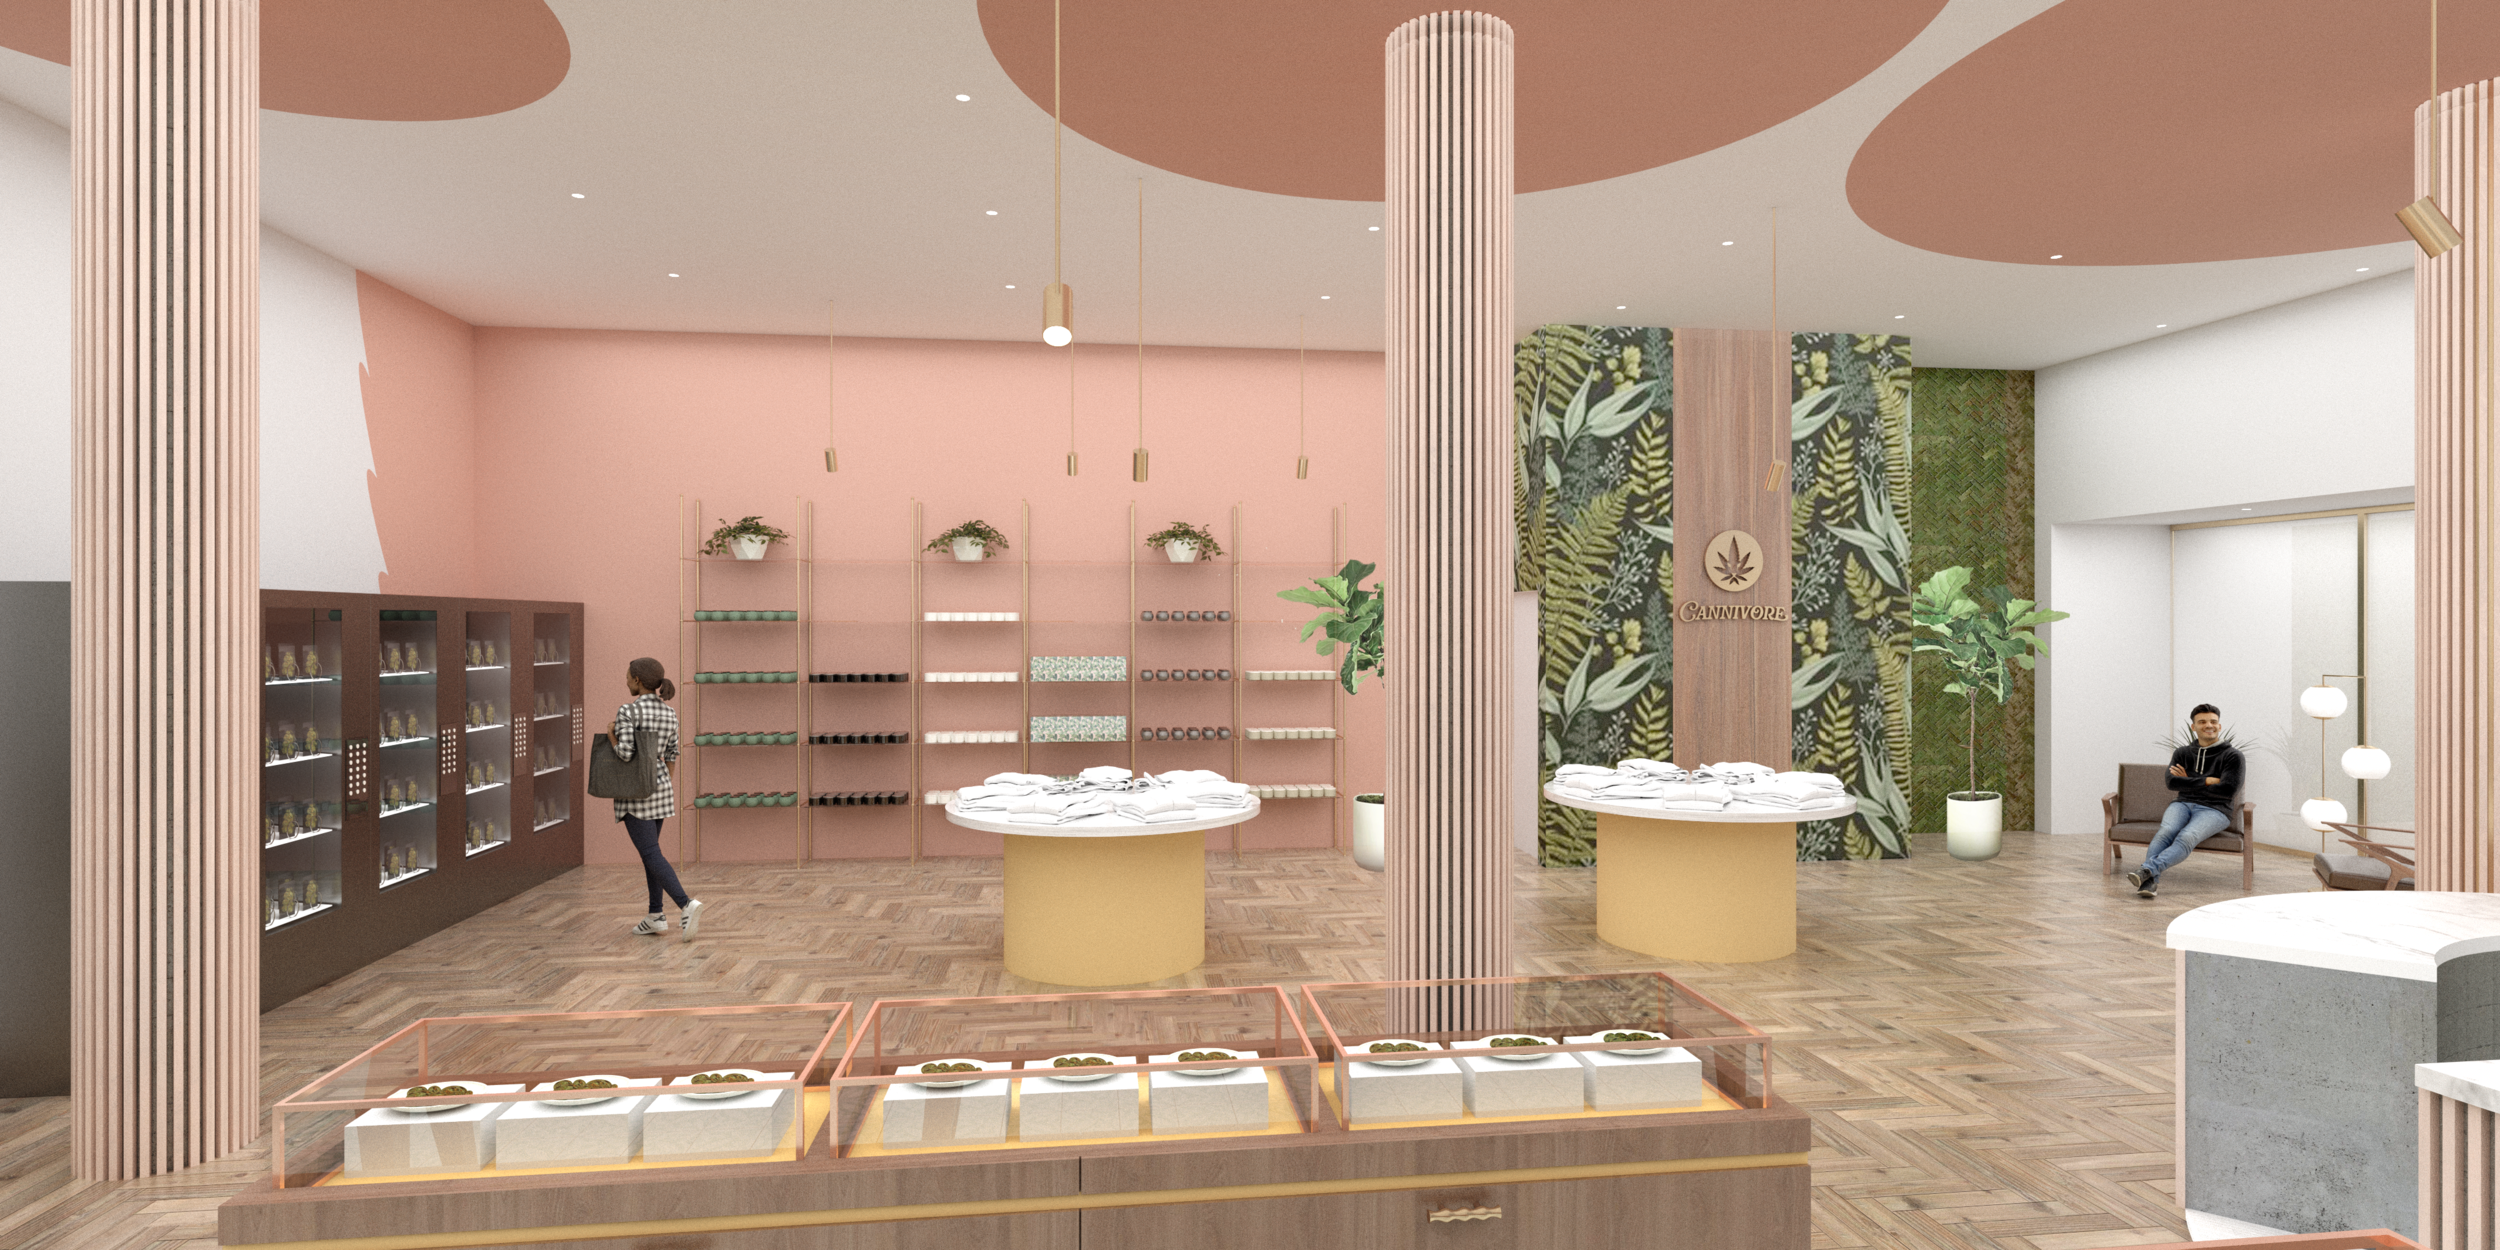 Proposal for a Cannabis Shop in Toronto - Done in collaboration with Iron Ladle